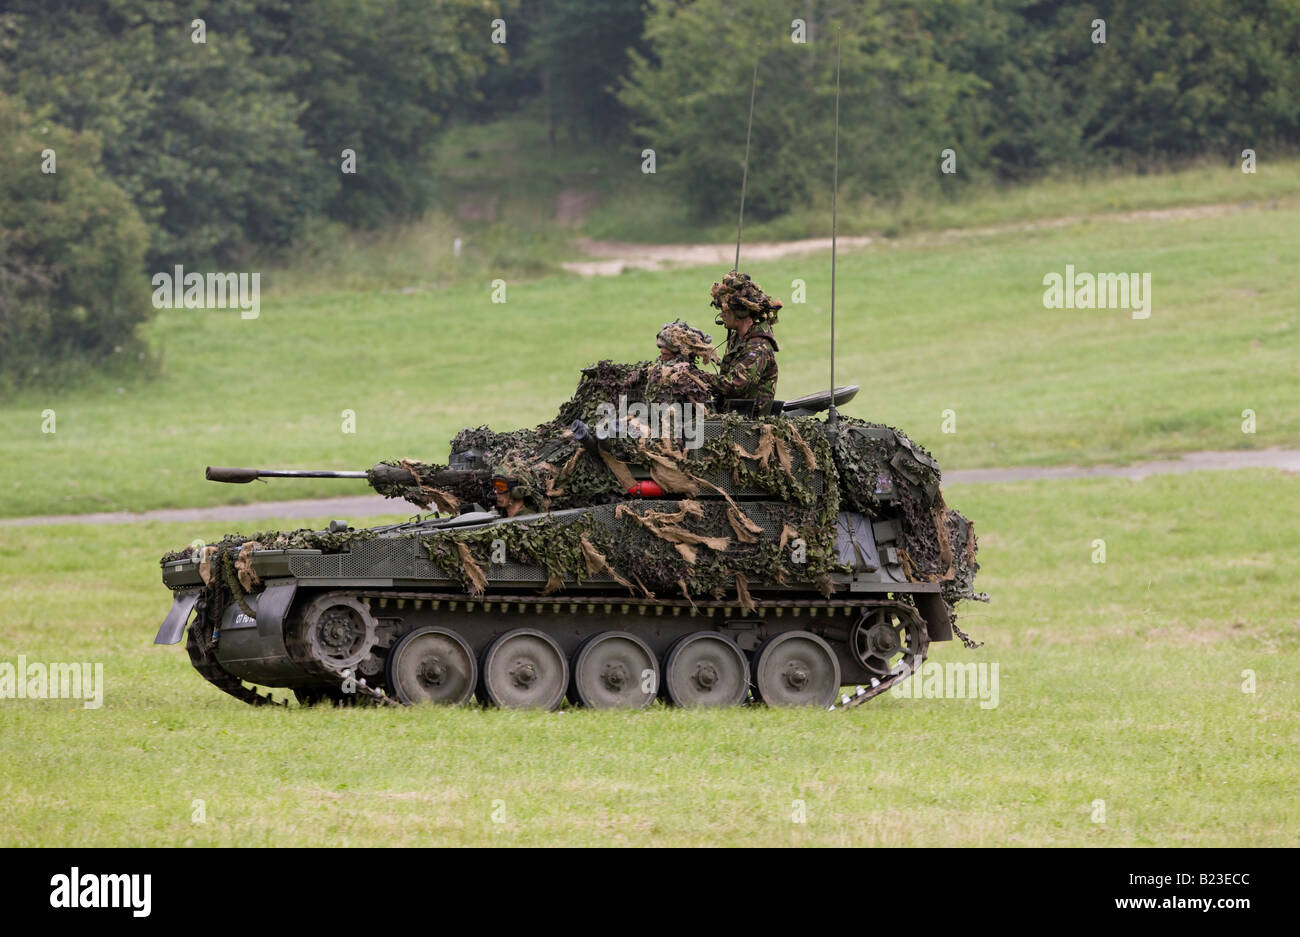 Scimitar is an armoured reconnaissance vehicle sometimes classed as a light tank used by the British Army - Stock Image